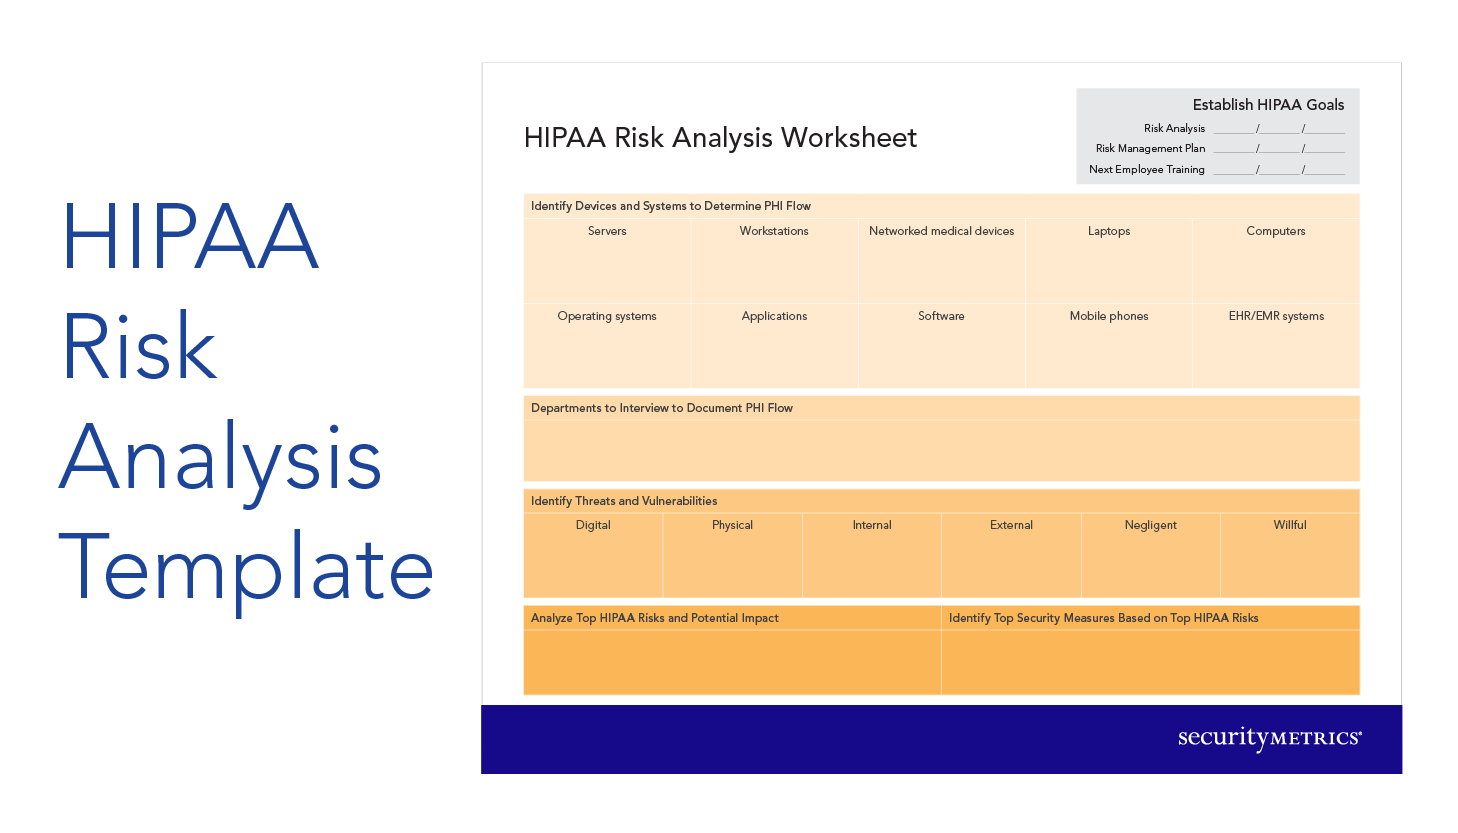 risk analysis worksheet how to start a hipaa risk analysis 894